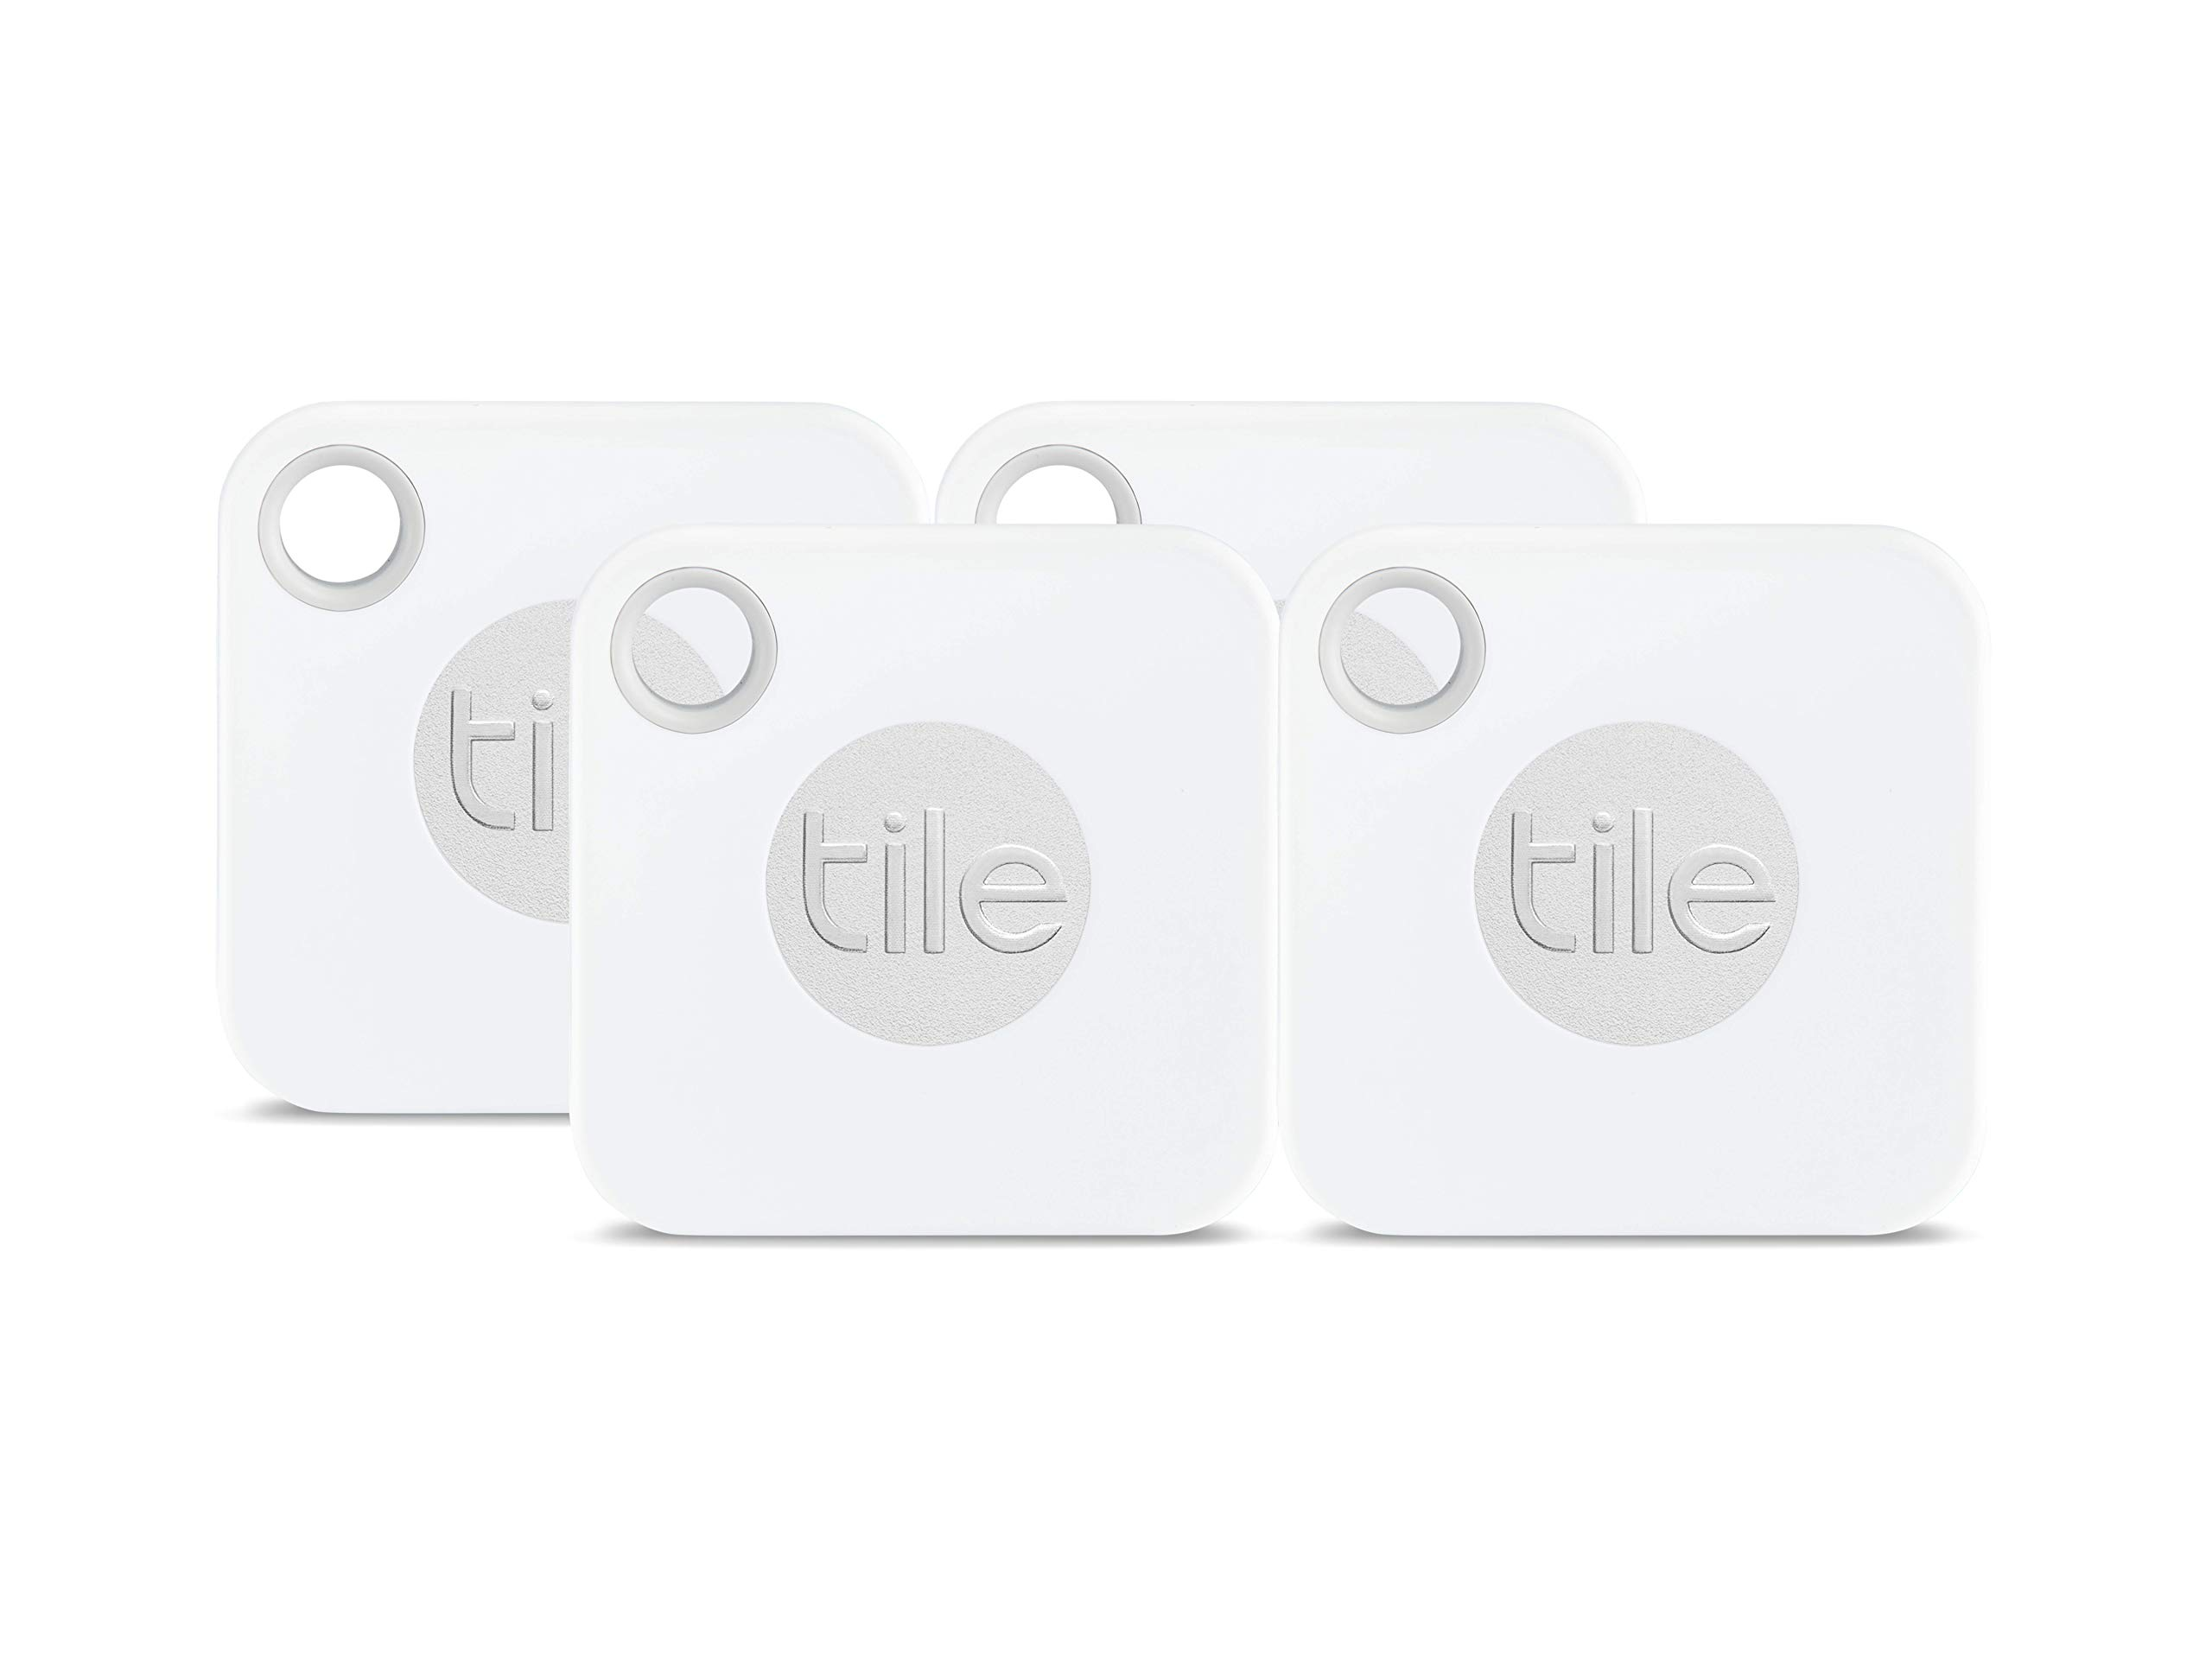 Tile Mate with Replaceable Battery - 4 pack - NEW